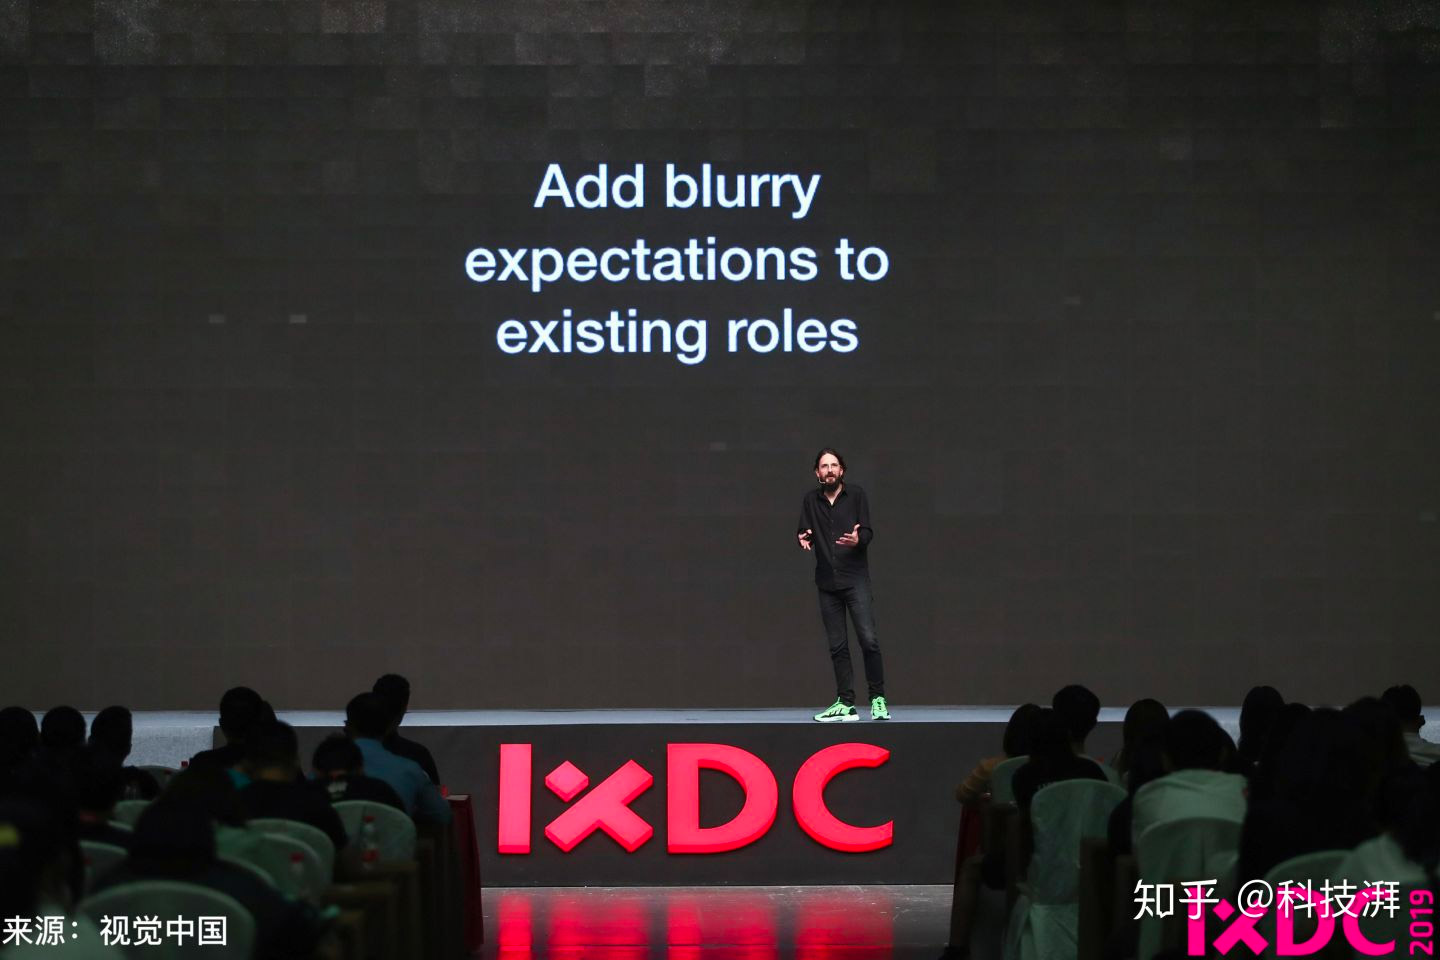 Randy as a speaker at IxDC Conference 2019 in Beijing, China (Source: Zhihu.com, IxDC 2019)